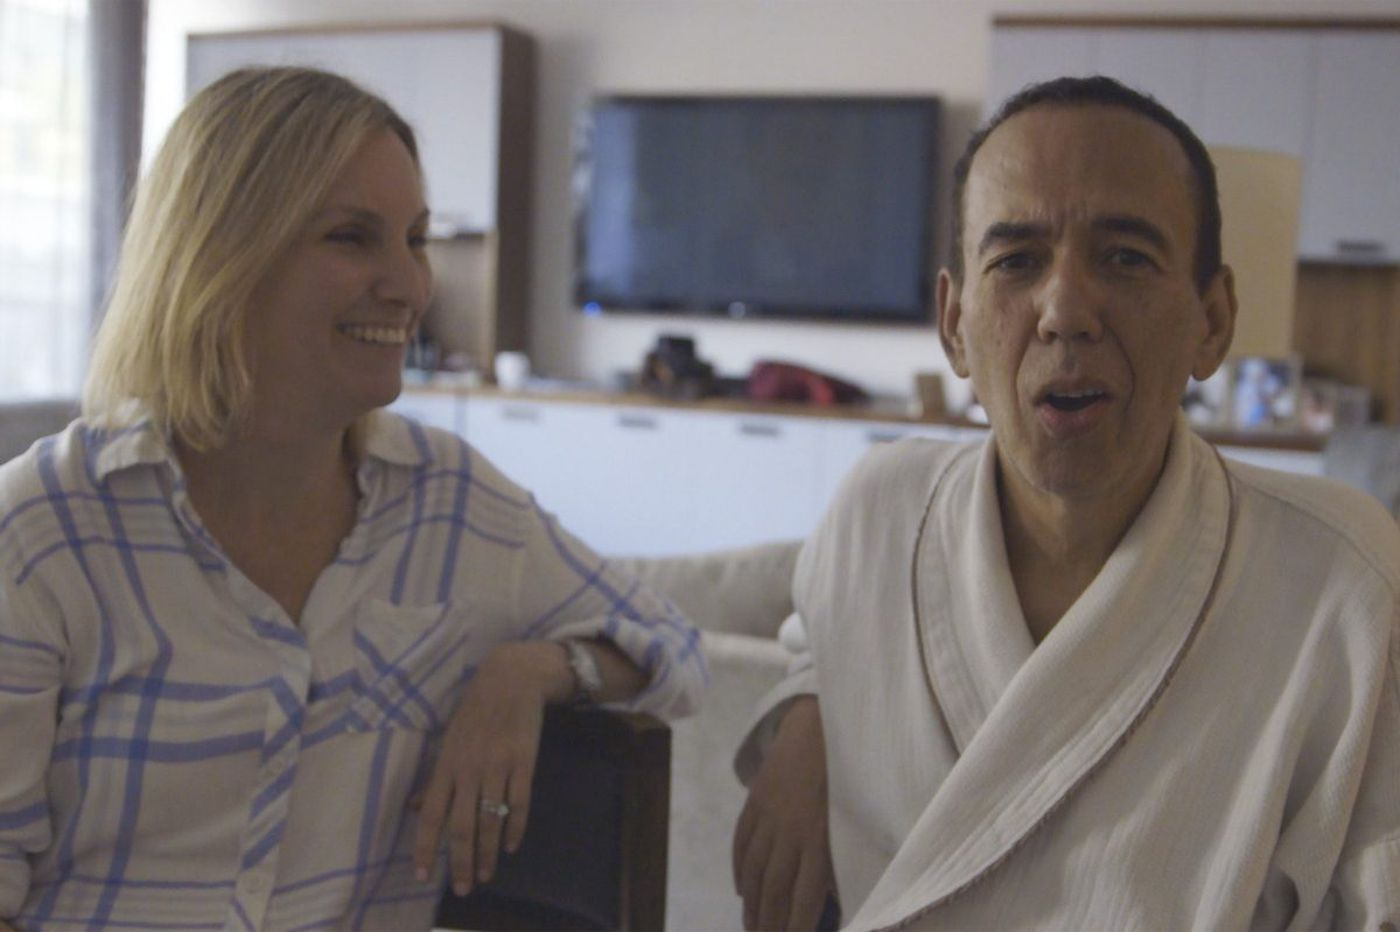 'Gilbert': A fresh, intimate look at foul-mouthed comedian Gilbert Gottfried